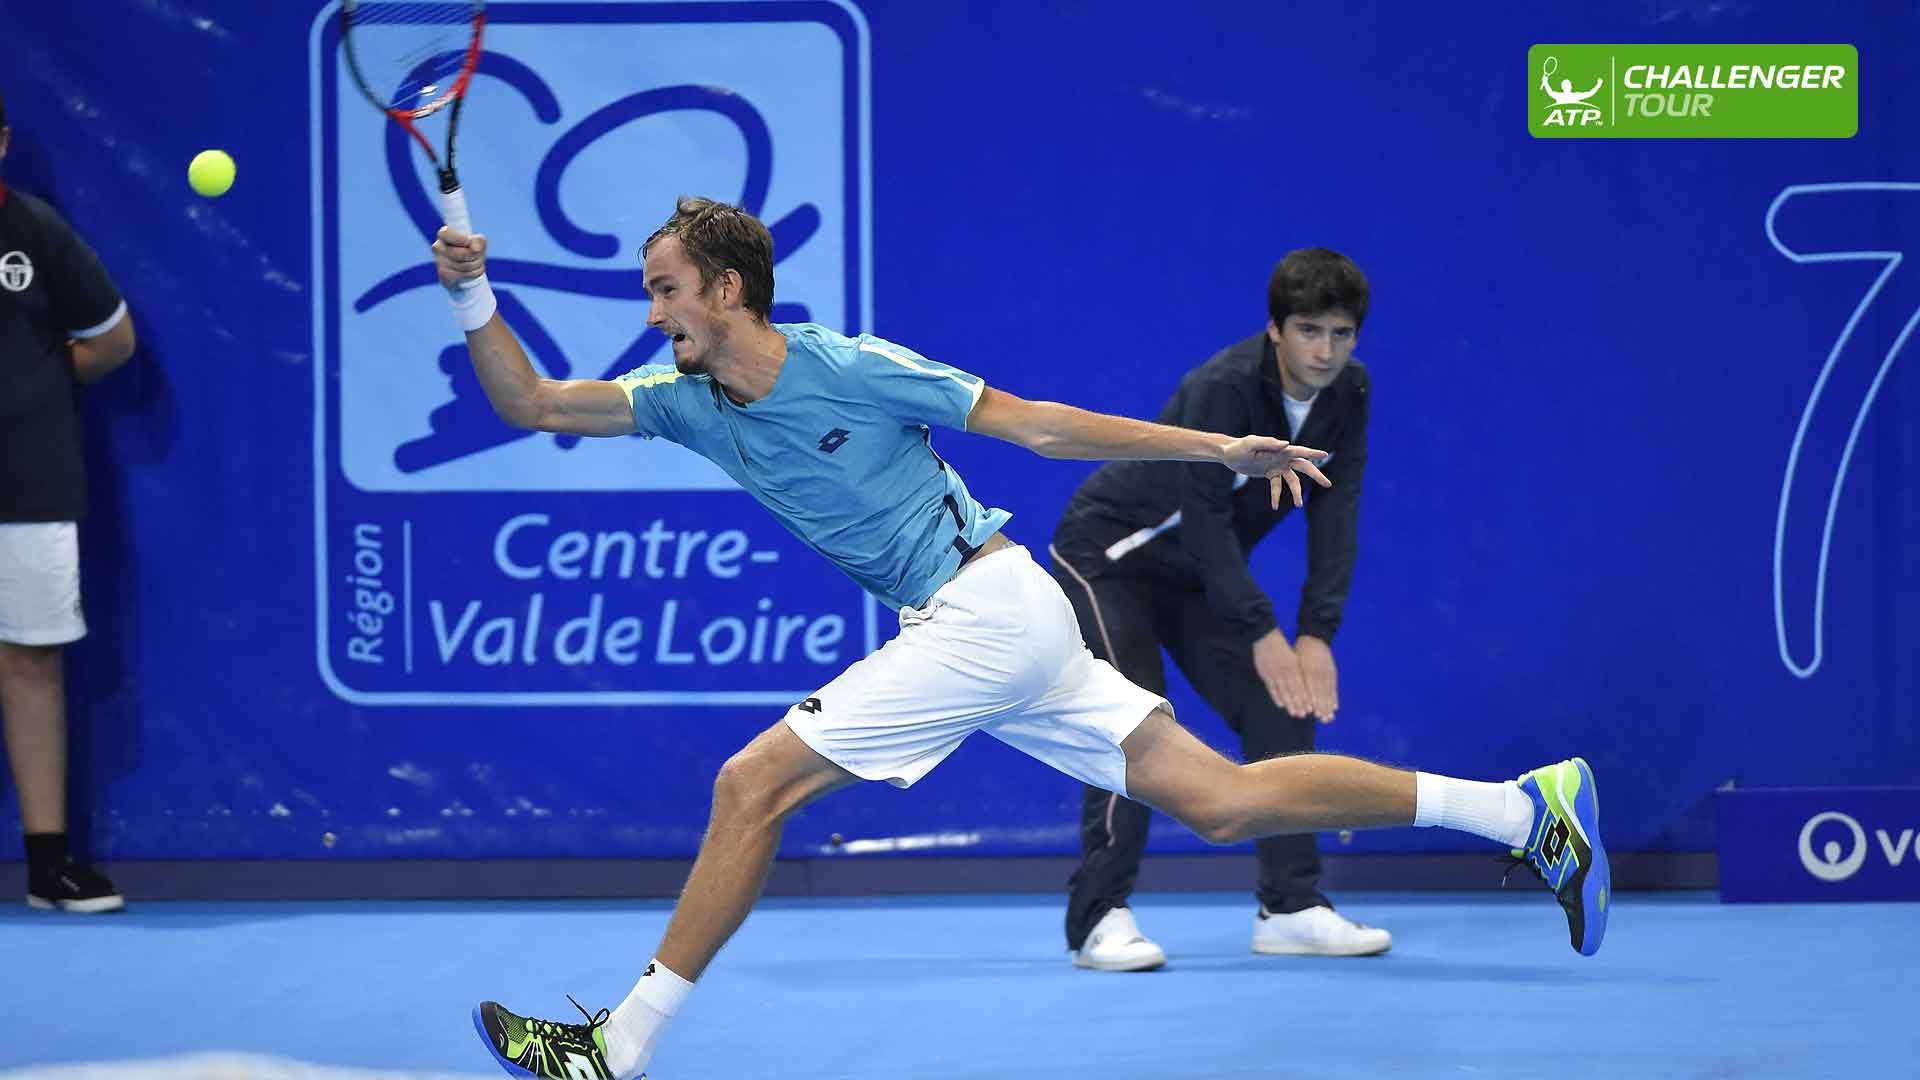 Daniil Medvedev looks for more ATP Challenger Tour success in Orleans.